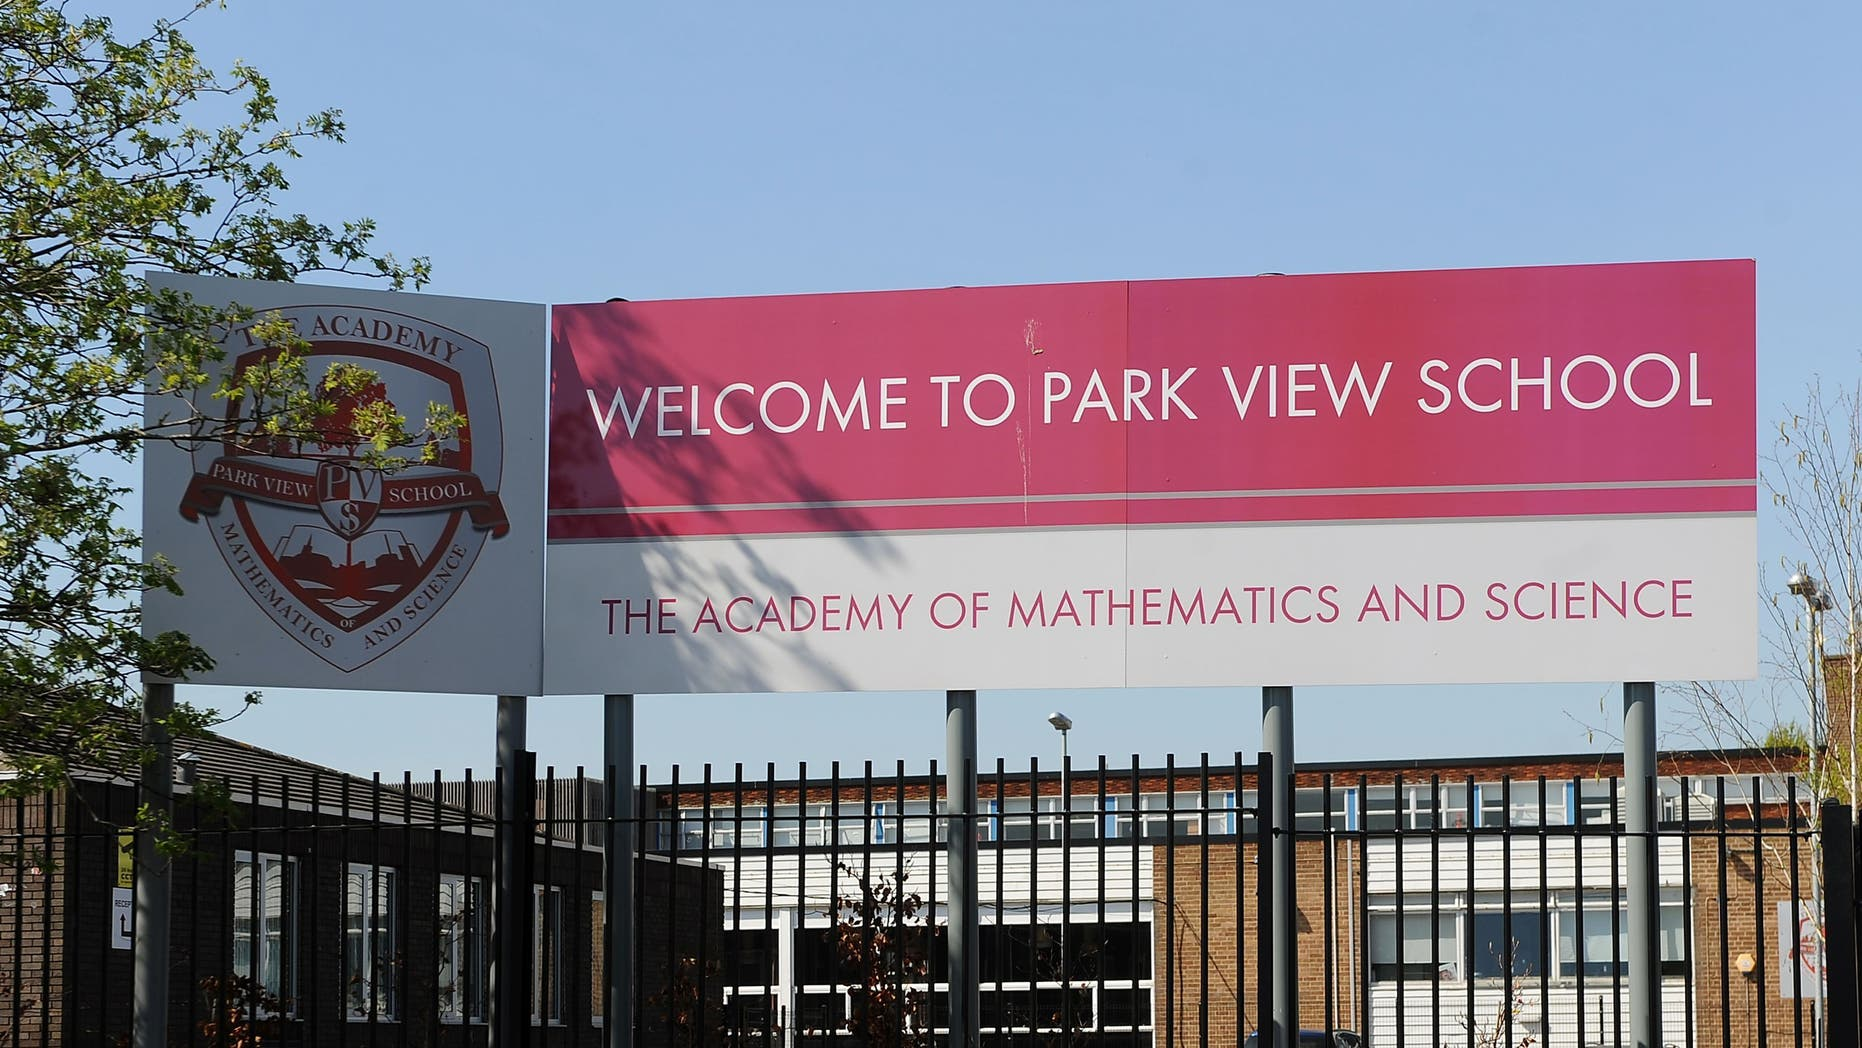 """April 16, 2014: Government inspectors say there is a """"culture of fear and intimidation"""" at several British schools, including Park View School in Birmingham, investigated over allegations of a plot to run them along strict Islamic lines."""